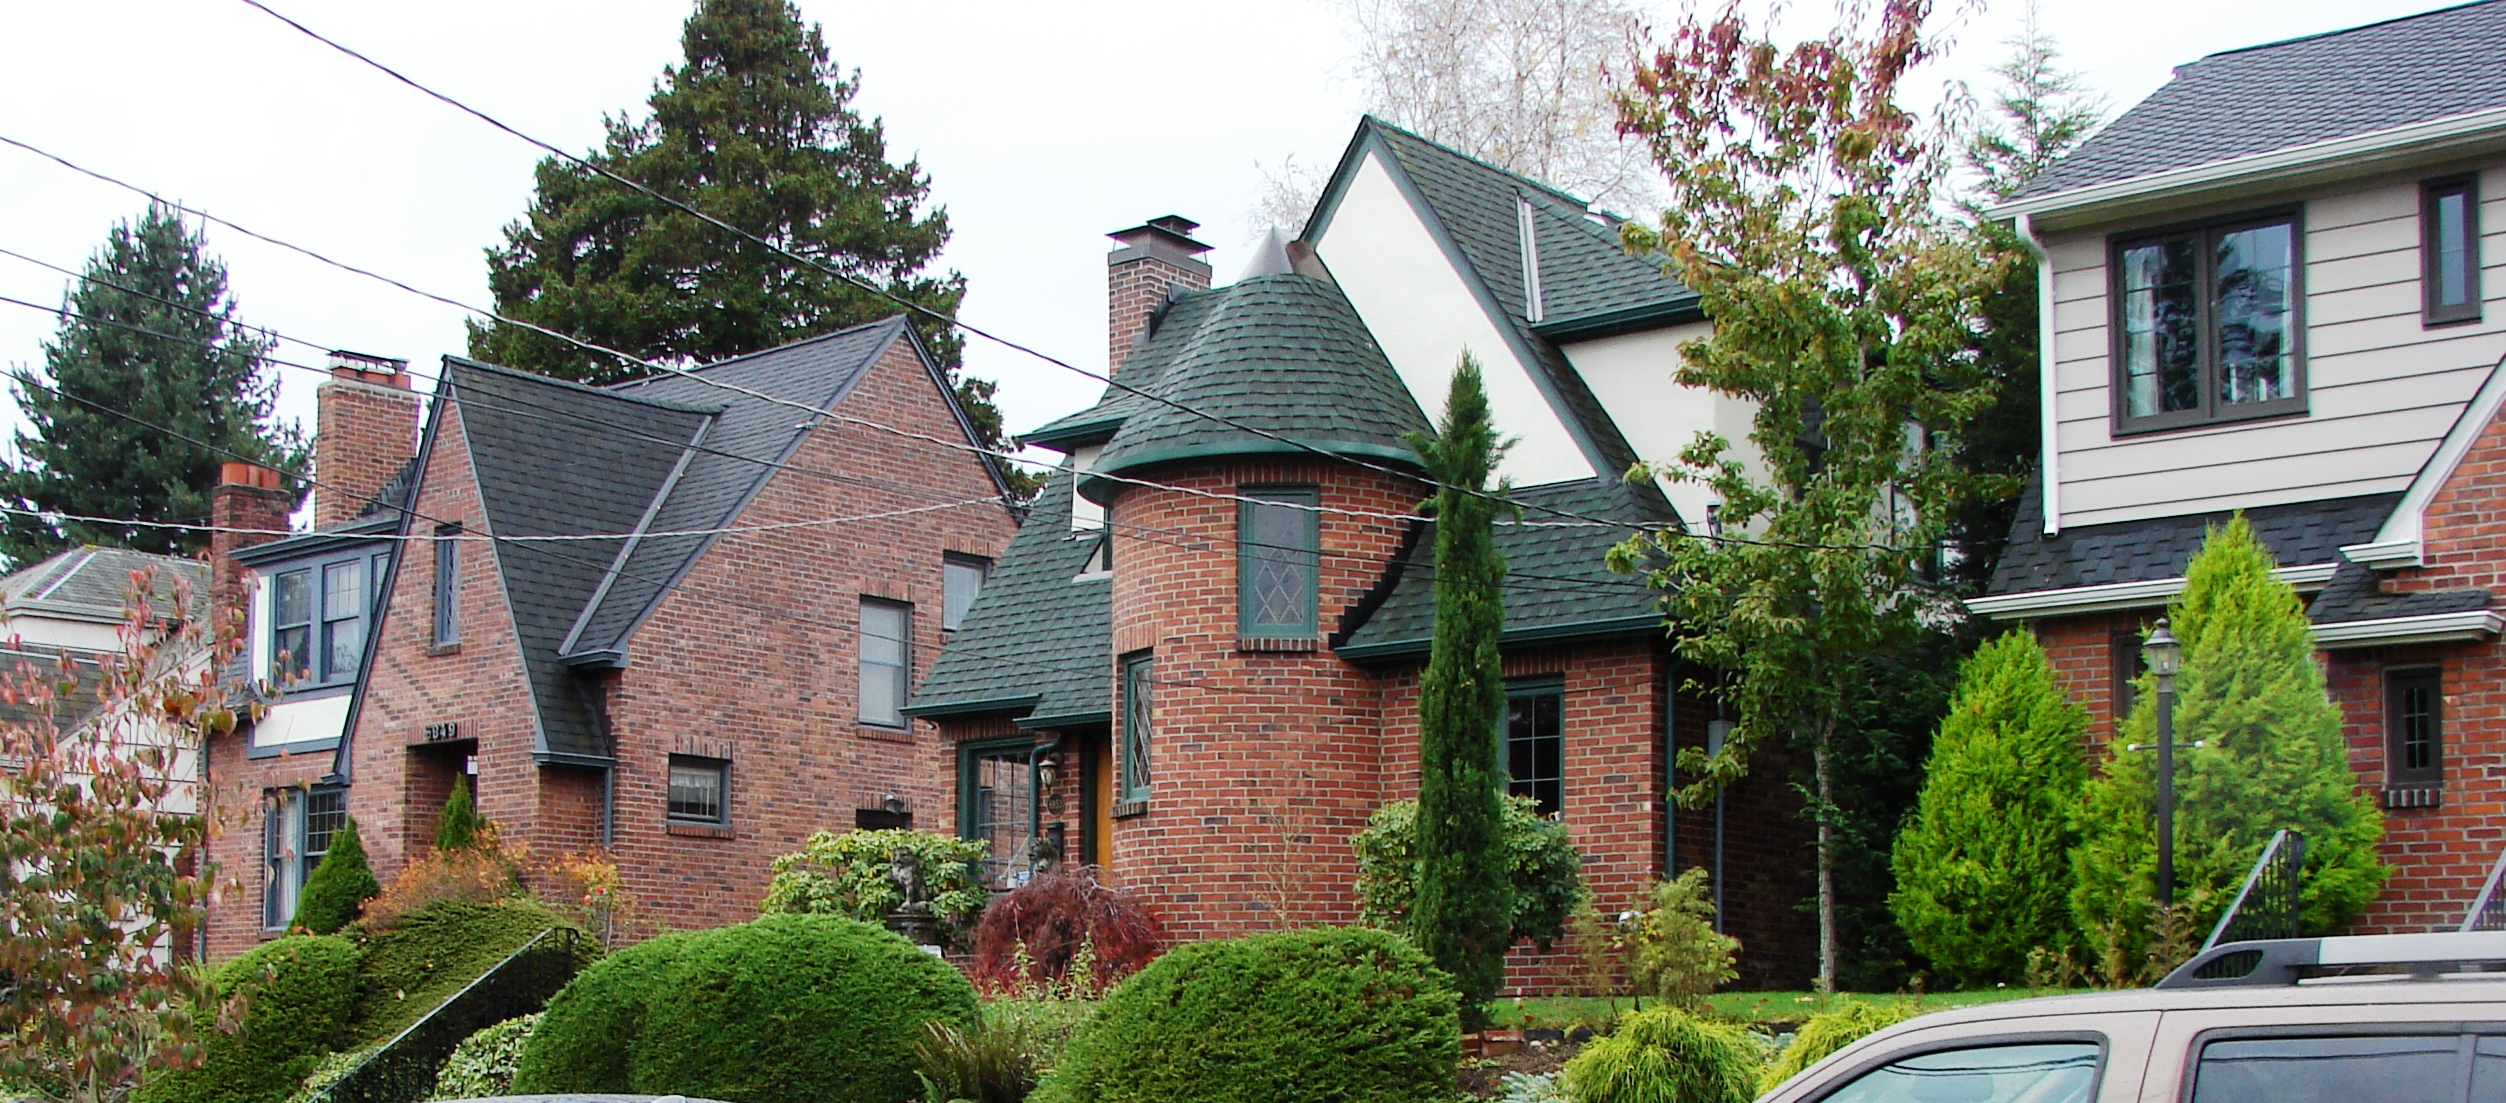 brick and stucco in wedgwood wedgwood in seattle history